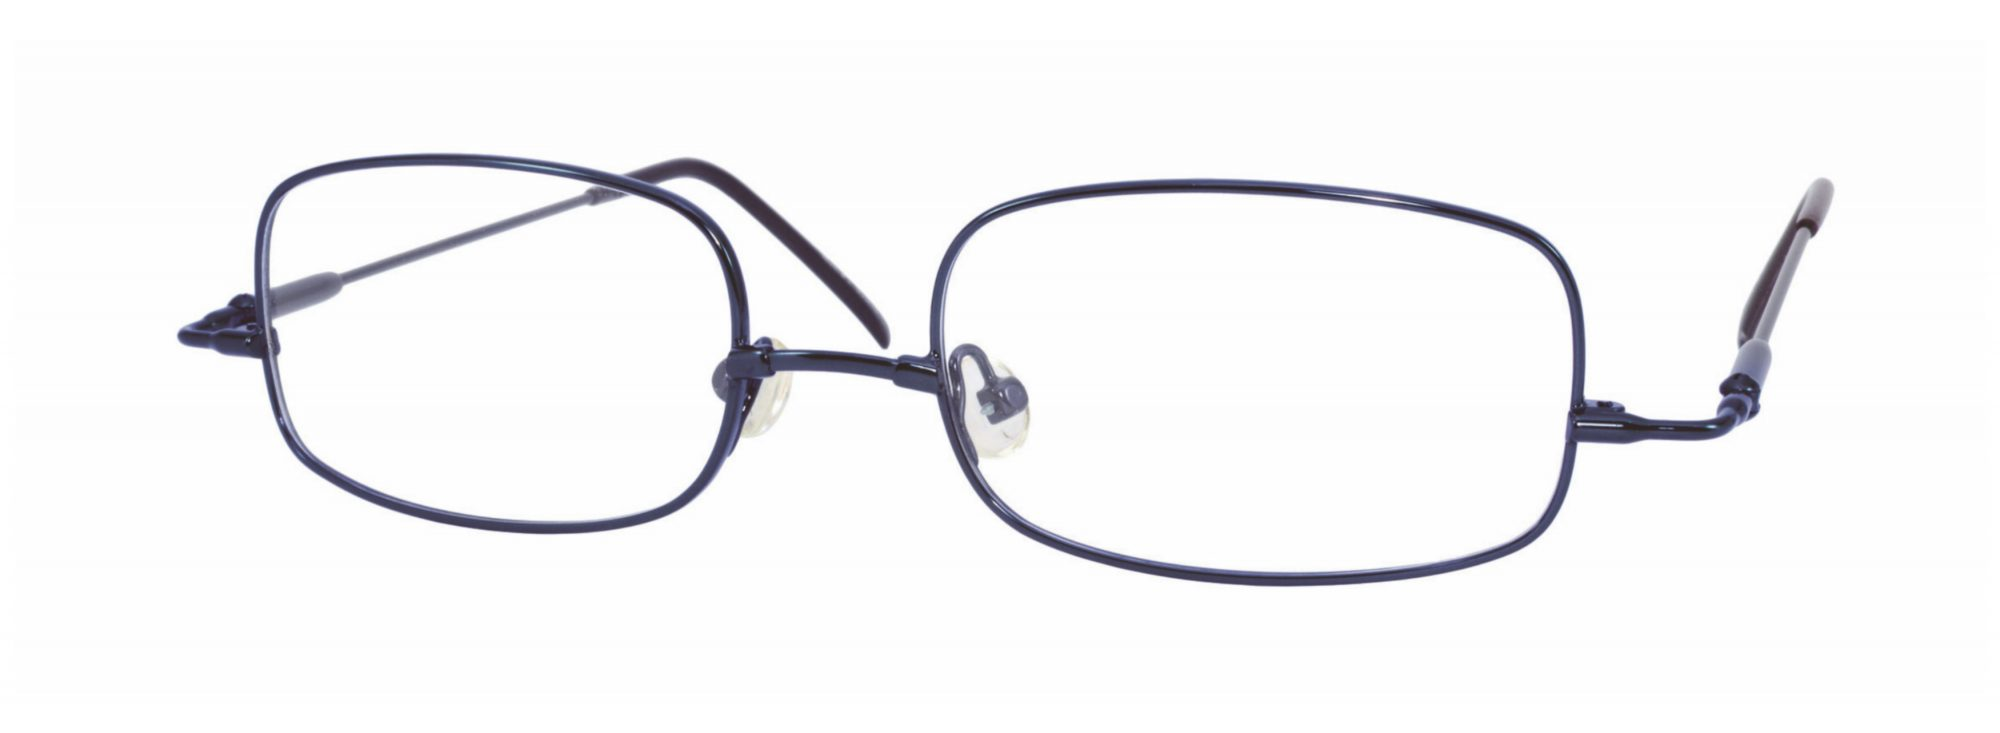 Erin's World frame style number EW-05 in navy